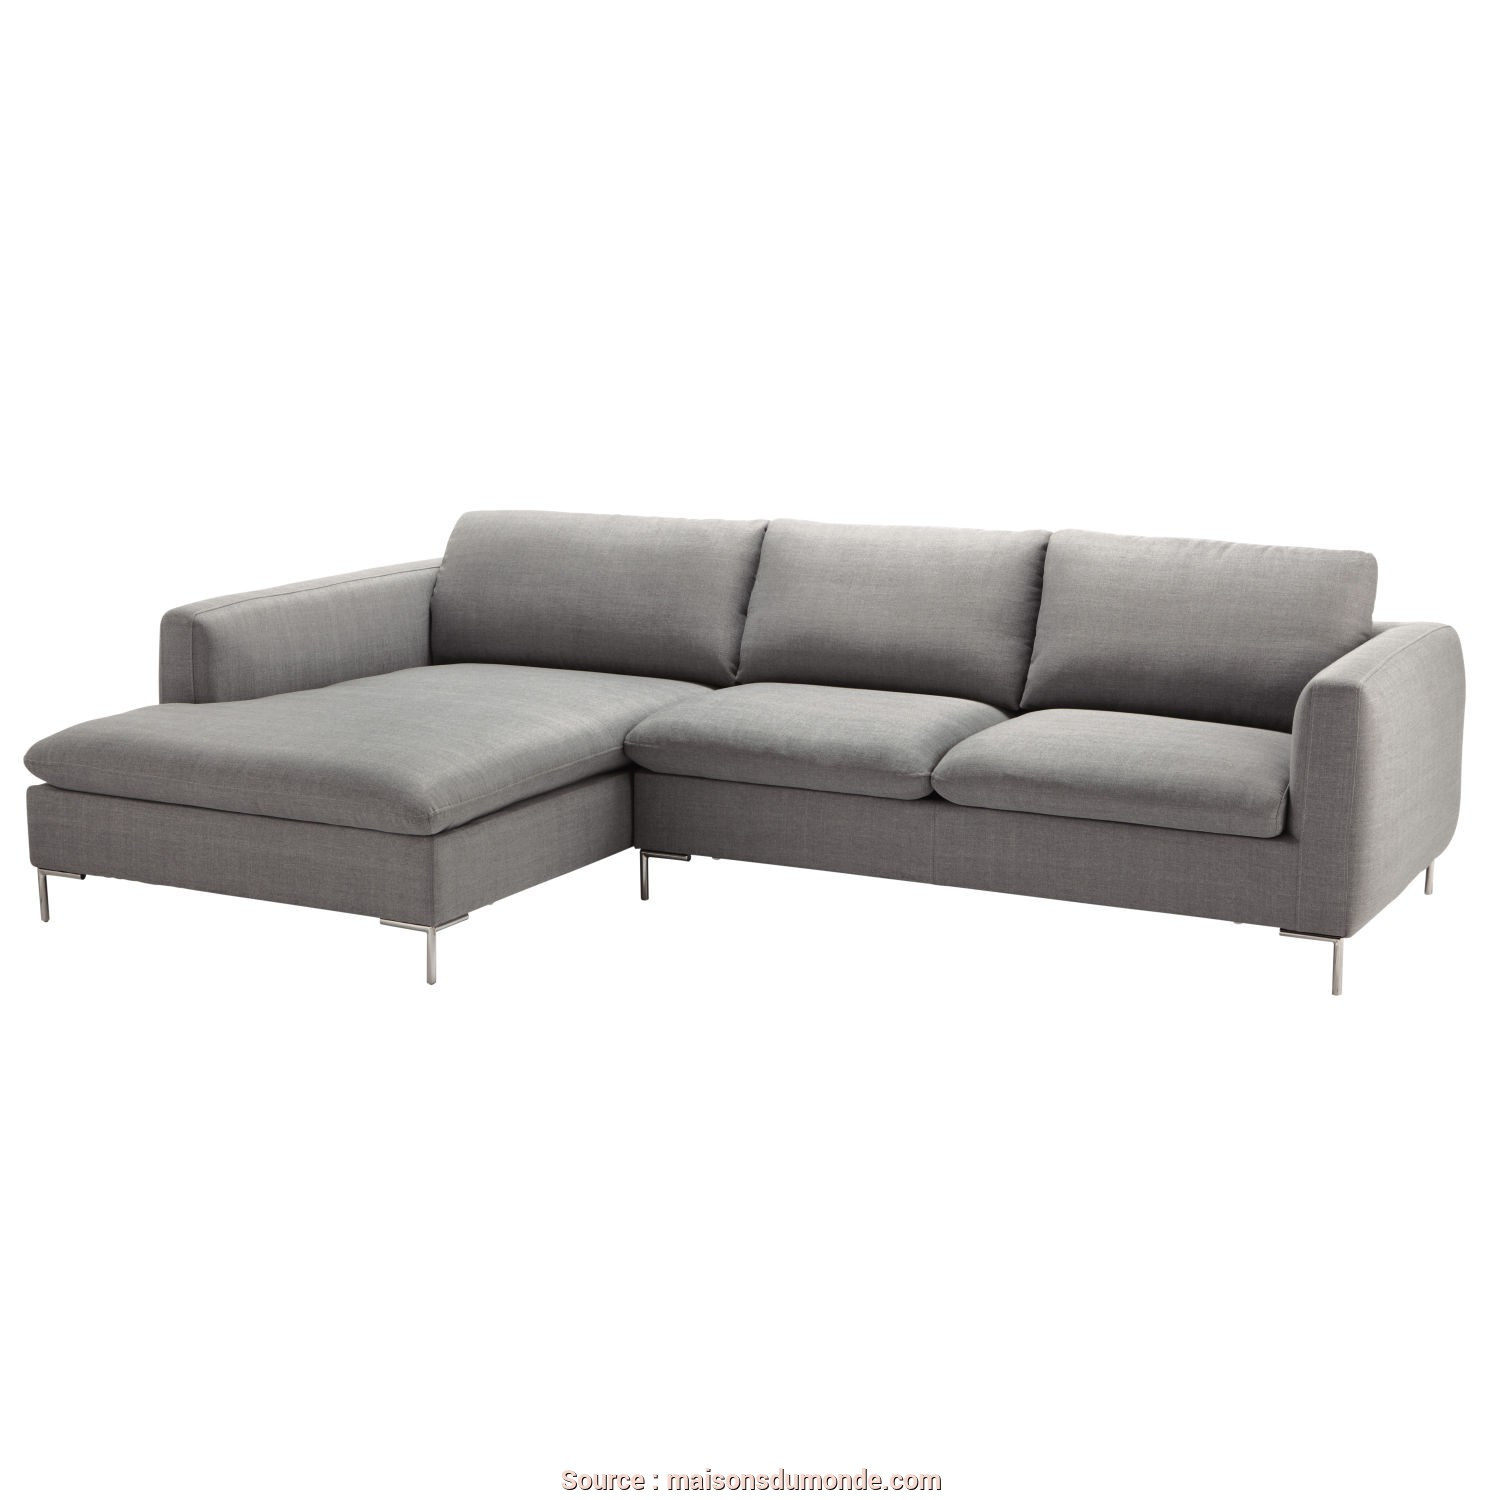 Maison Du Monde Divano Verde, Completare 5-Seater Fabric Left Corner Sofa In Light Grey, Maisons Du Monde